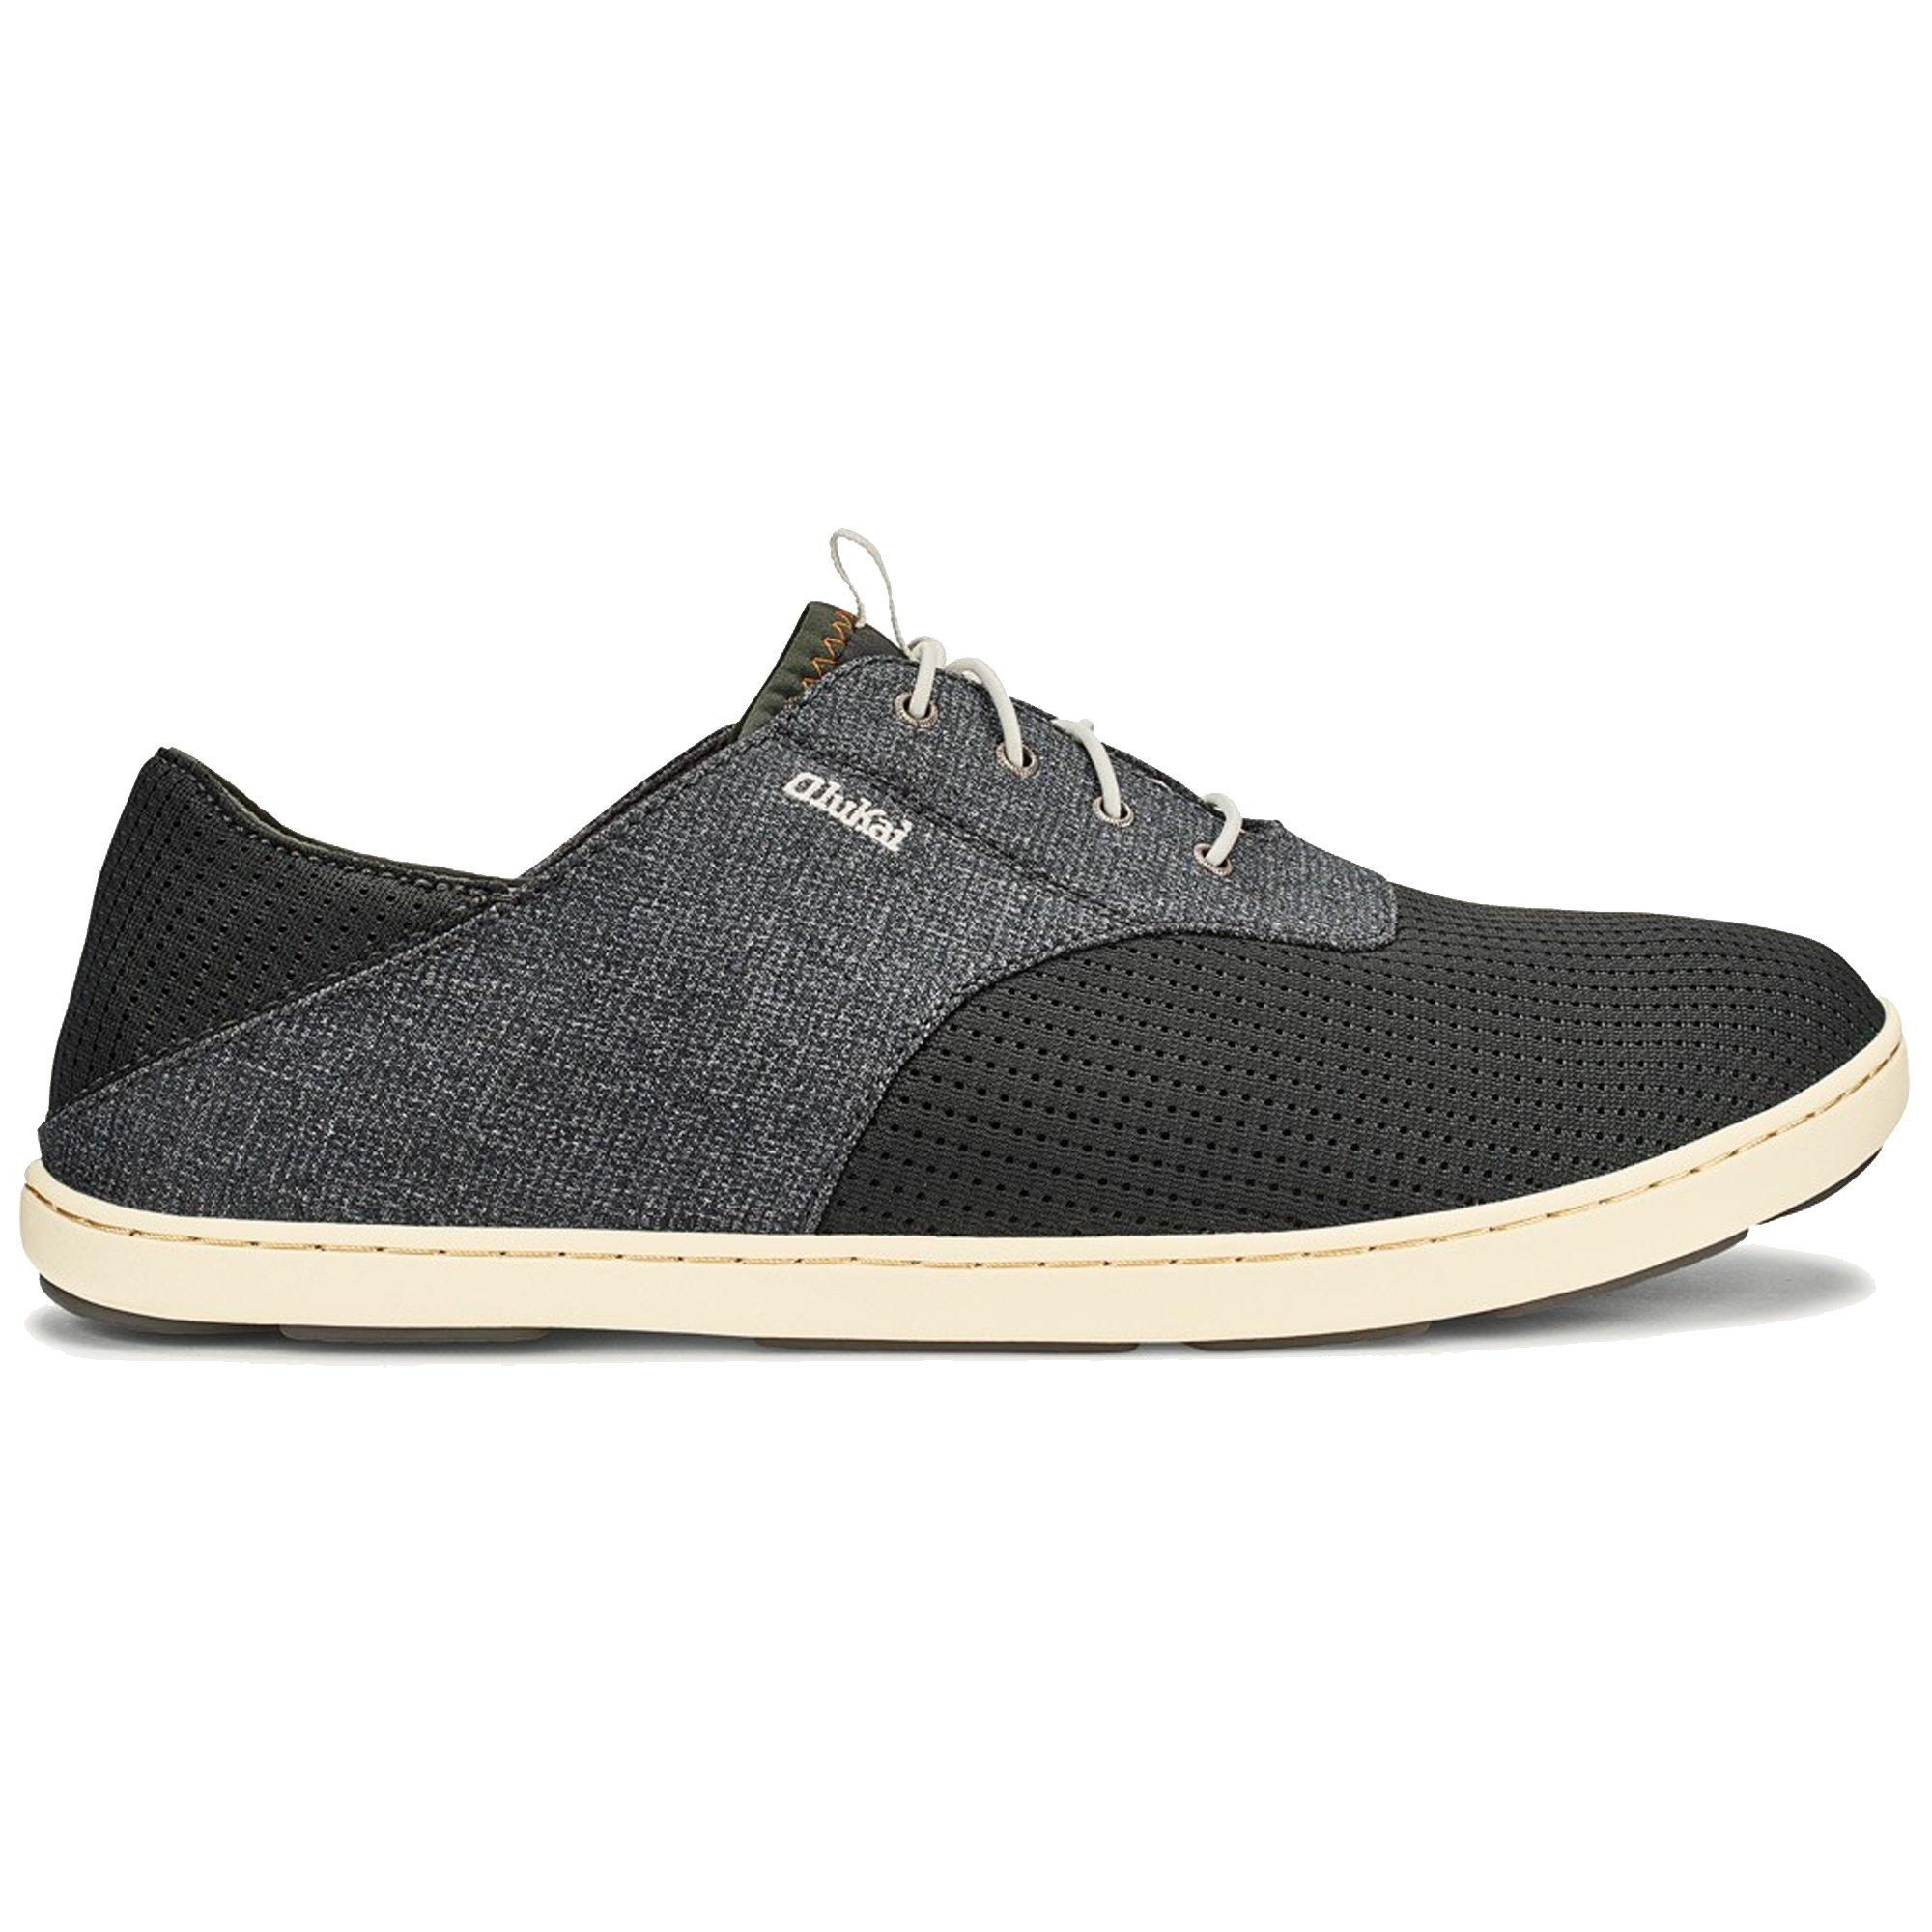 OLUKAI Men's Nohea Moku Shoes Dark Shadow/Dark Shadow 10